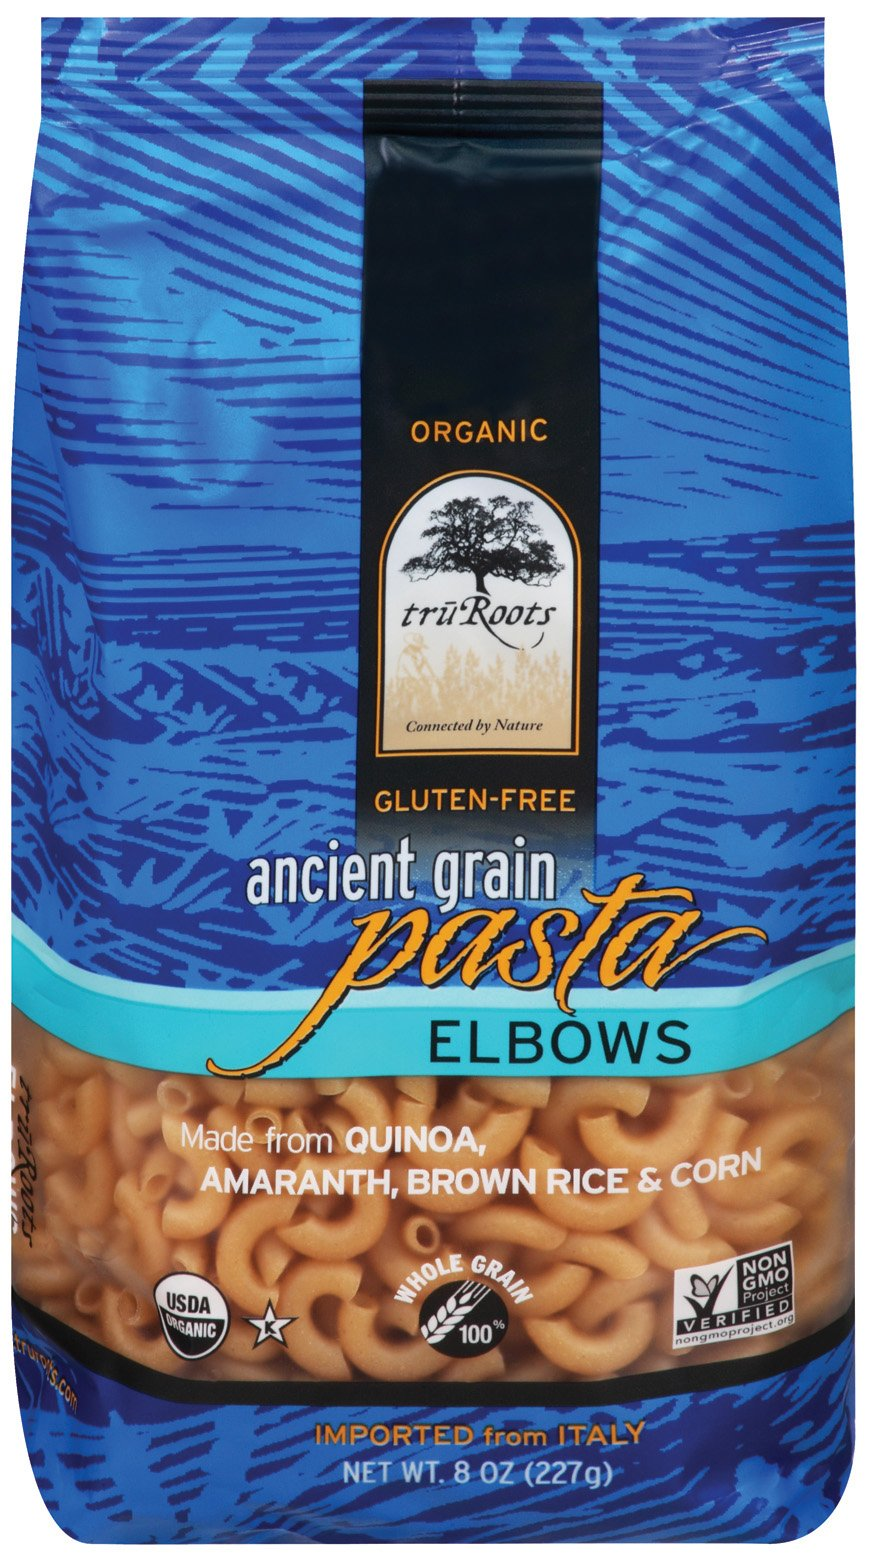 truRoots Ancient Grain Elbow Pasta, 8 Ounce (Pack of 6) by truRoots